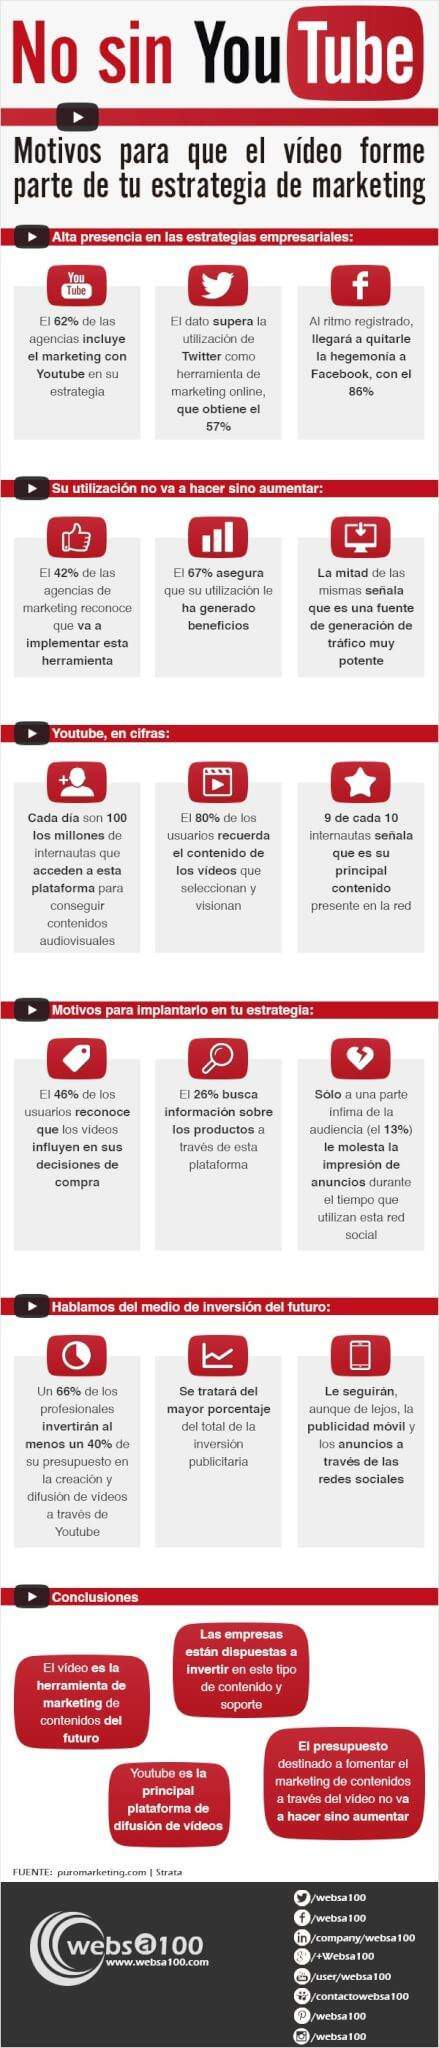 infografia-video_marketing